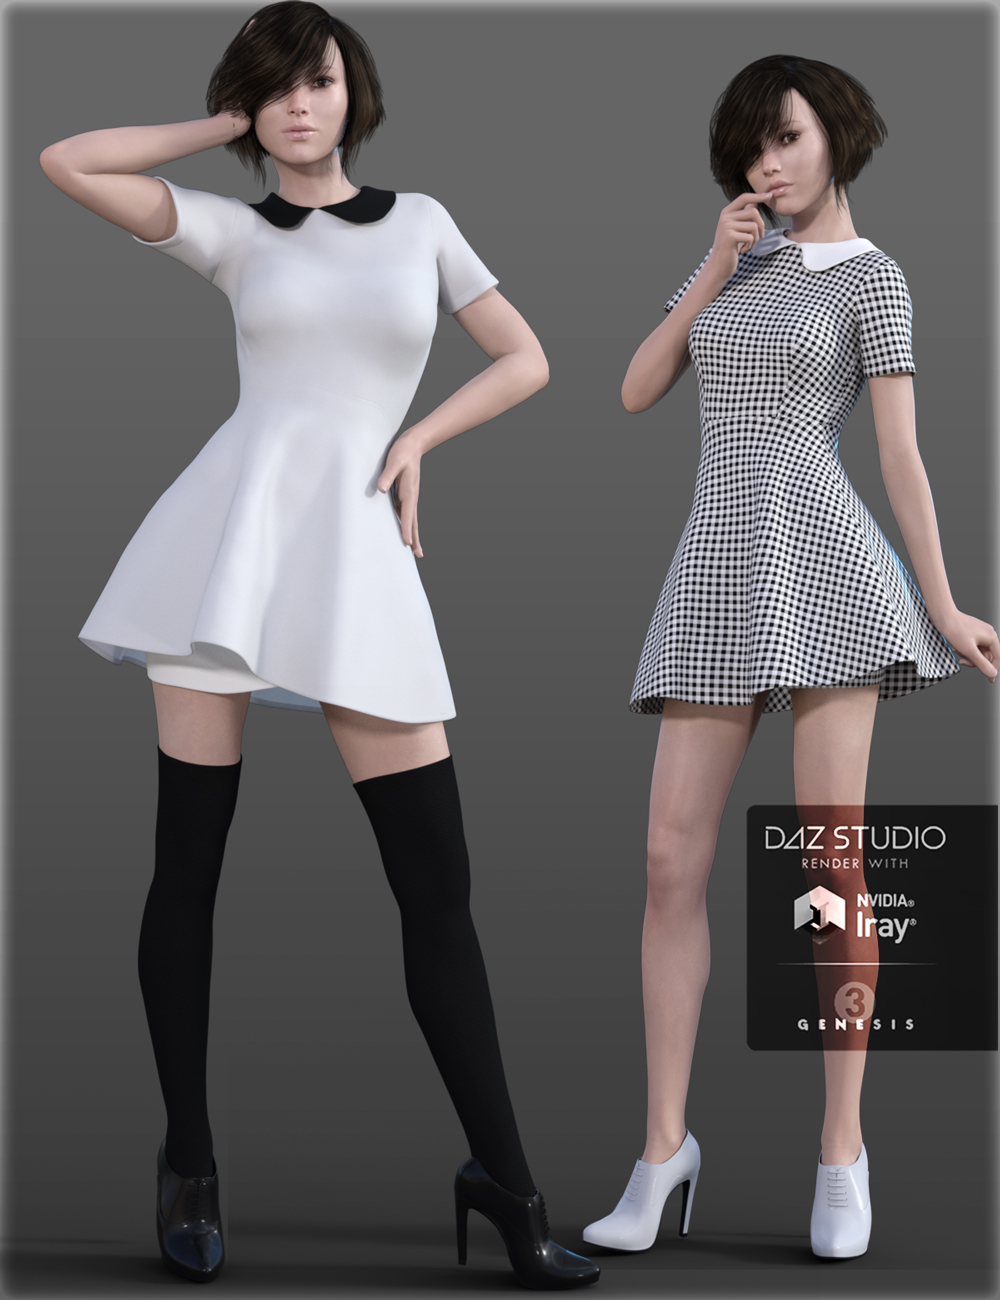 H&C Peter Pan Collar Dress for Genesis 3 Female(s) by: IH Kang, 3D Models by Daz 3D